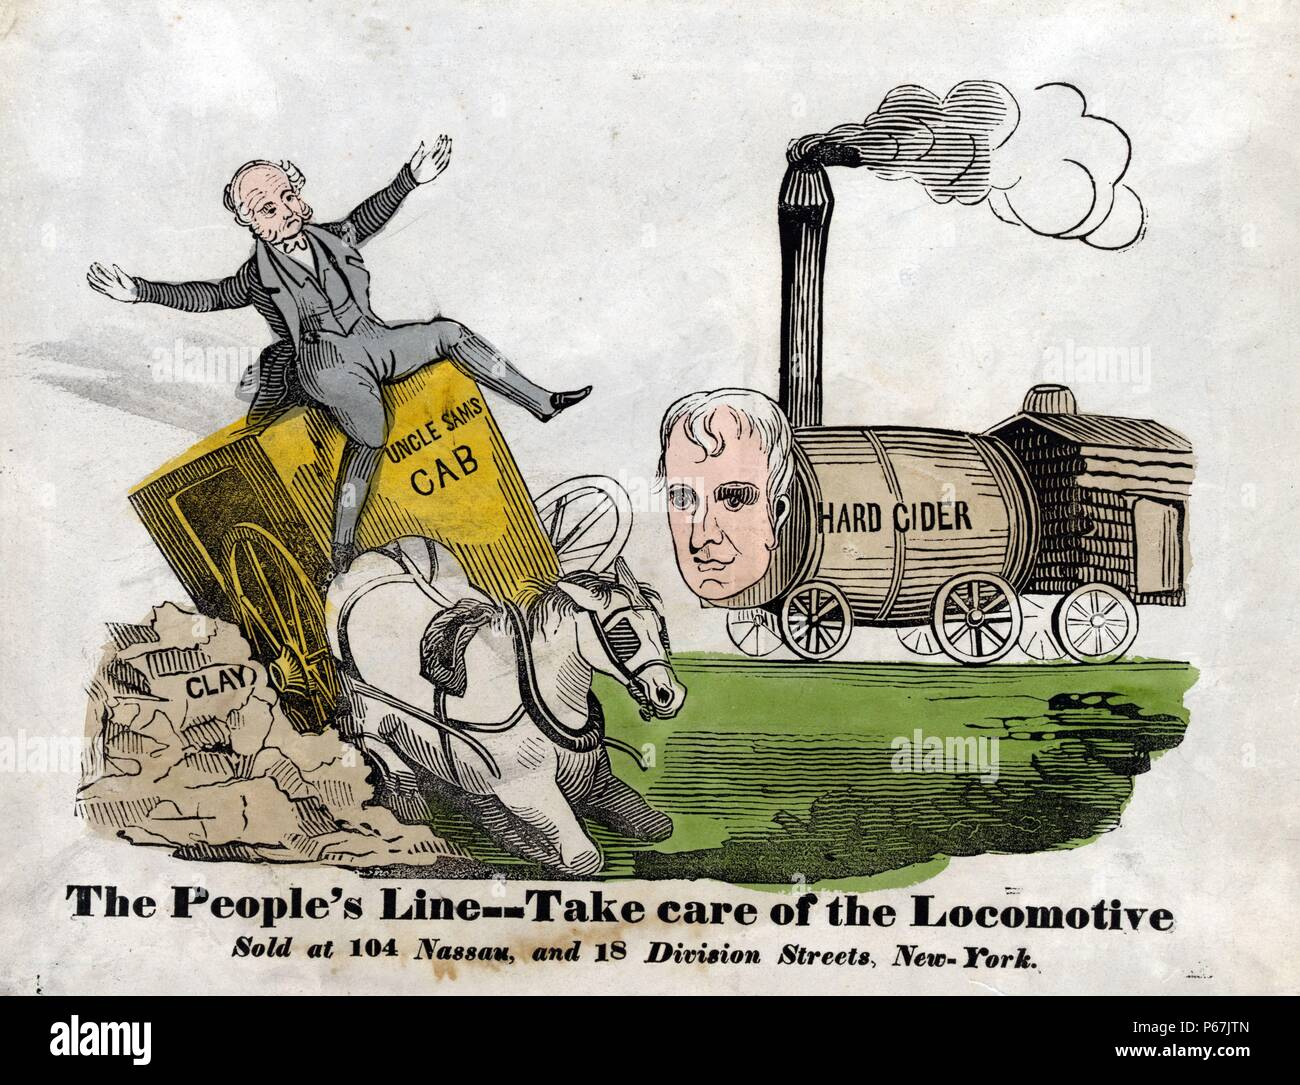 The people's line--Take care of the locomotive' Incumbent President Martin Van Buren drives 'Uncle Sam's Cab,' a carriage pulled by a blundered horse, which wrecks on a pile of 'Clay.' The carriage founders in the path of a locomotive, really an assemblage of a 'Hard Cider' barrel, a log cabin, and the head of Whig presidential candidate William Henry Harrison on wheels. - Stock Image